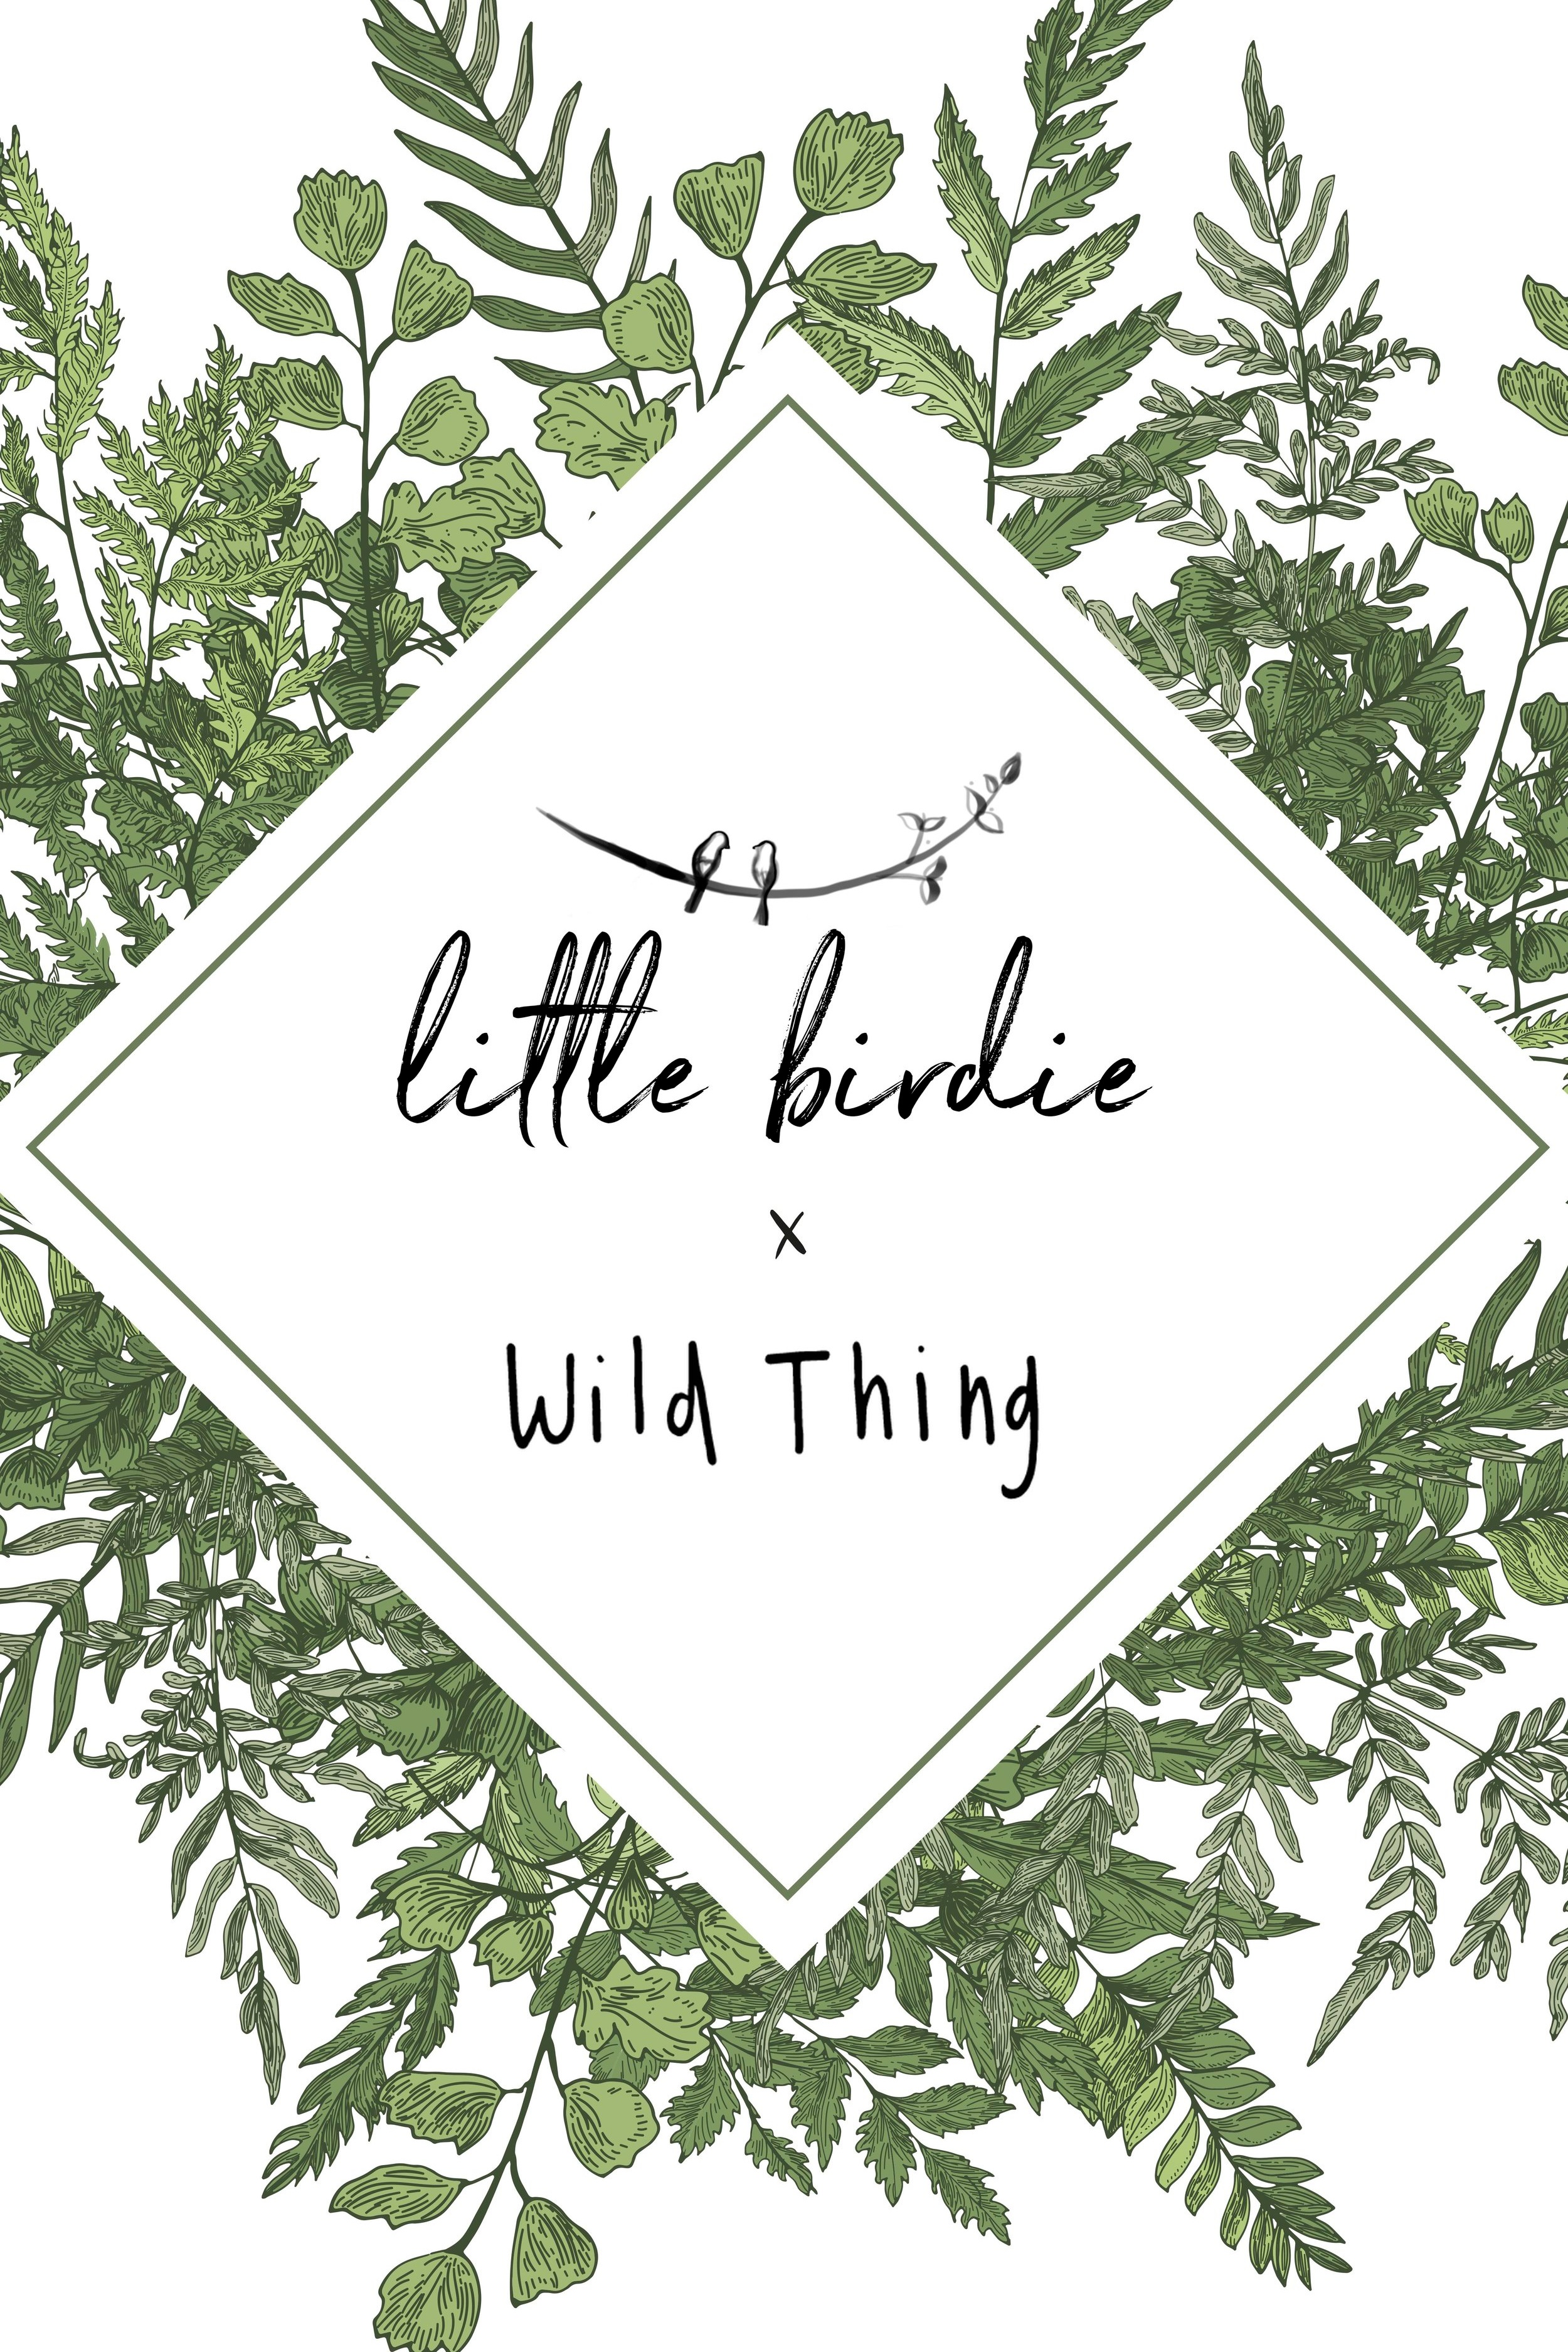 Little Birdie x Wild Thing! - we bring you our next event - at the beautifully thoughtful Wild Thing.Tickets are now on sale & showcase tables are available - get in touch with us via our Contact page or DM on instagram!